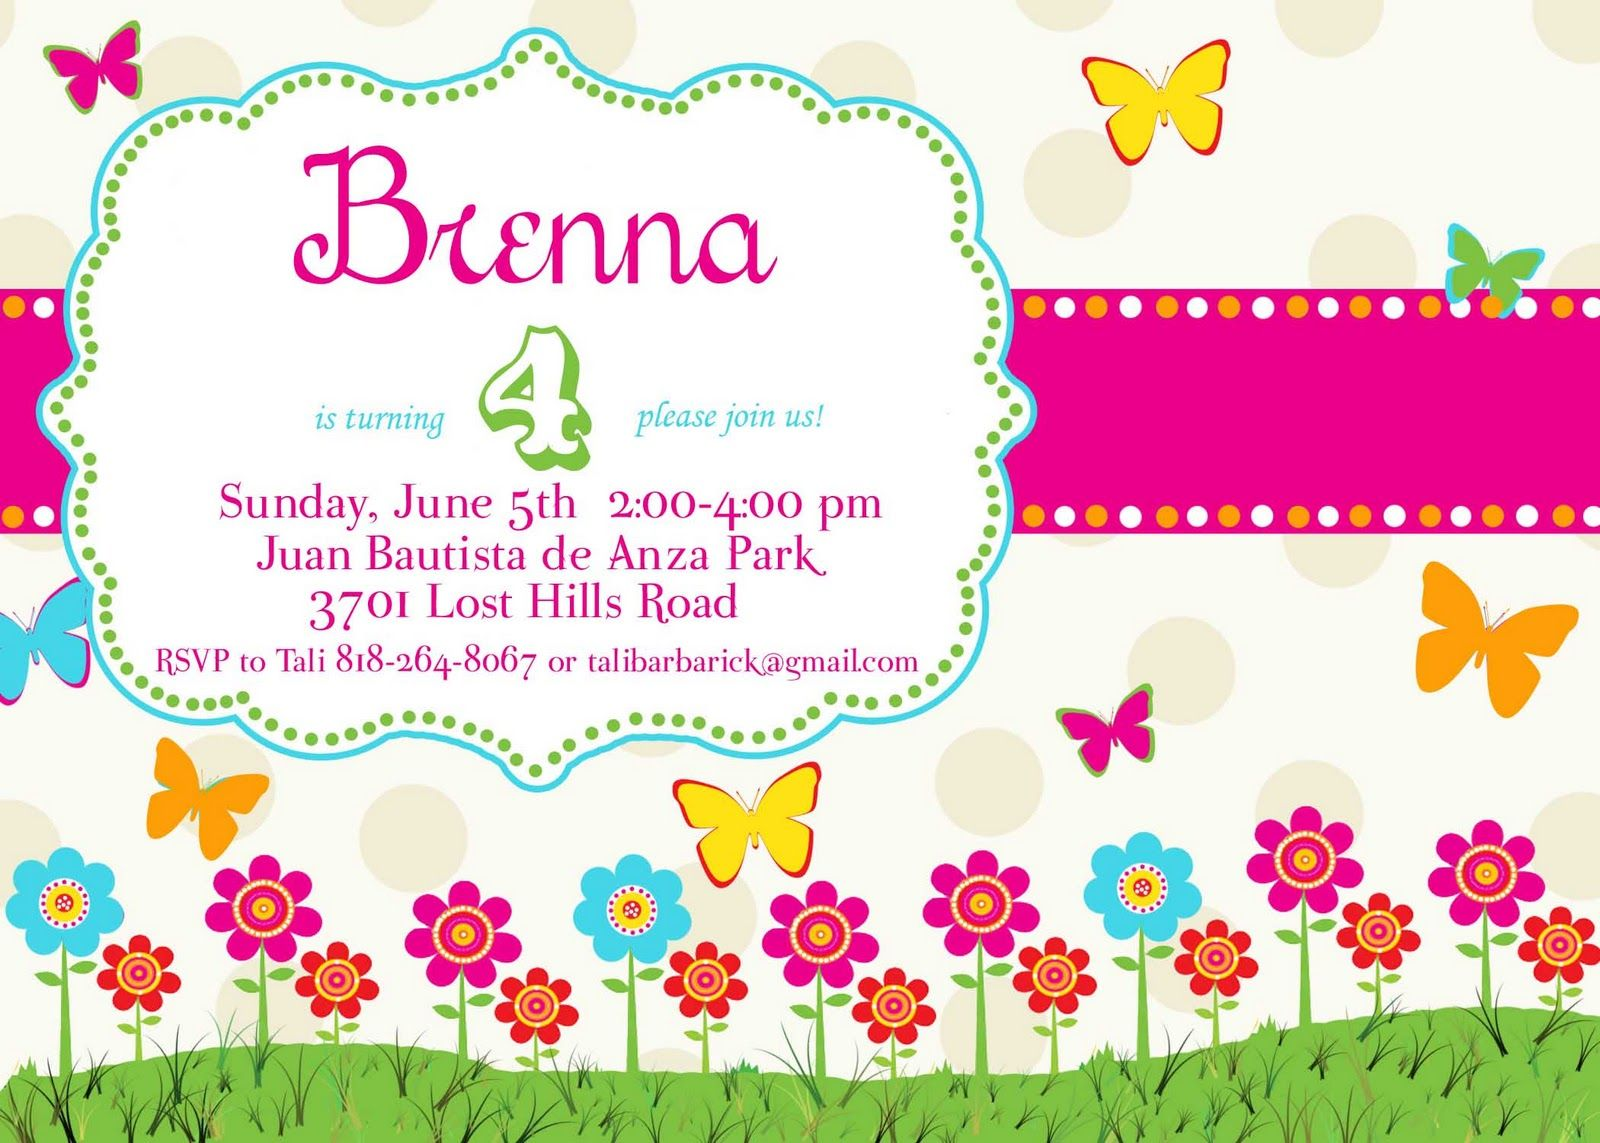 Free Birthday Invitation Cards Templates Butterfly Birthday Free - Card template free: invitation cards for birthday party template